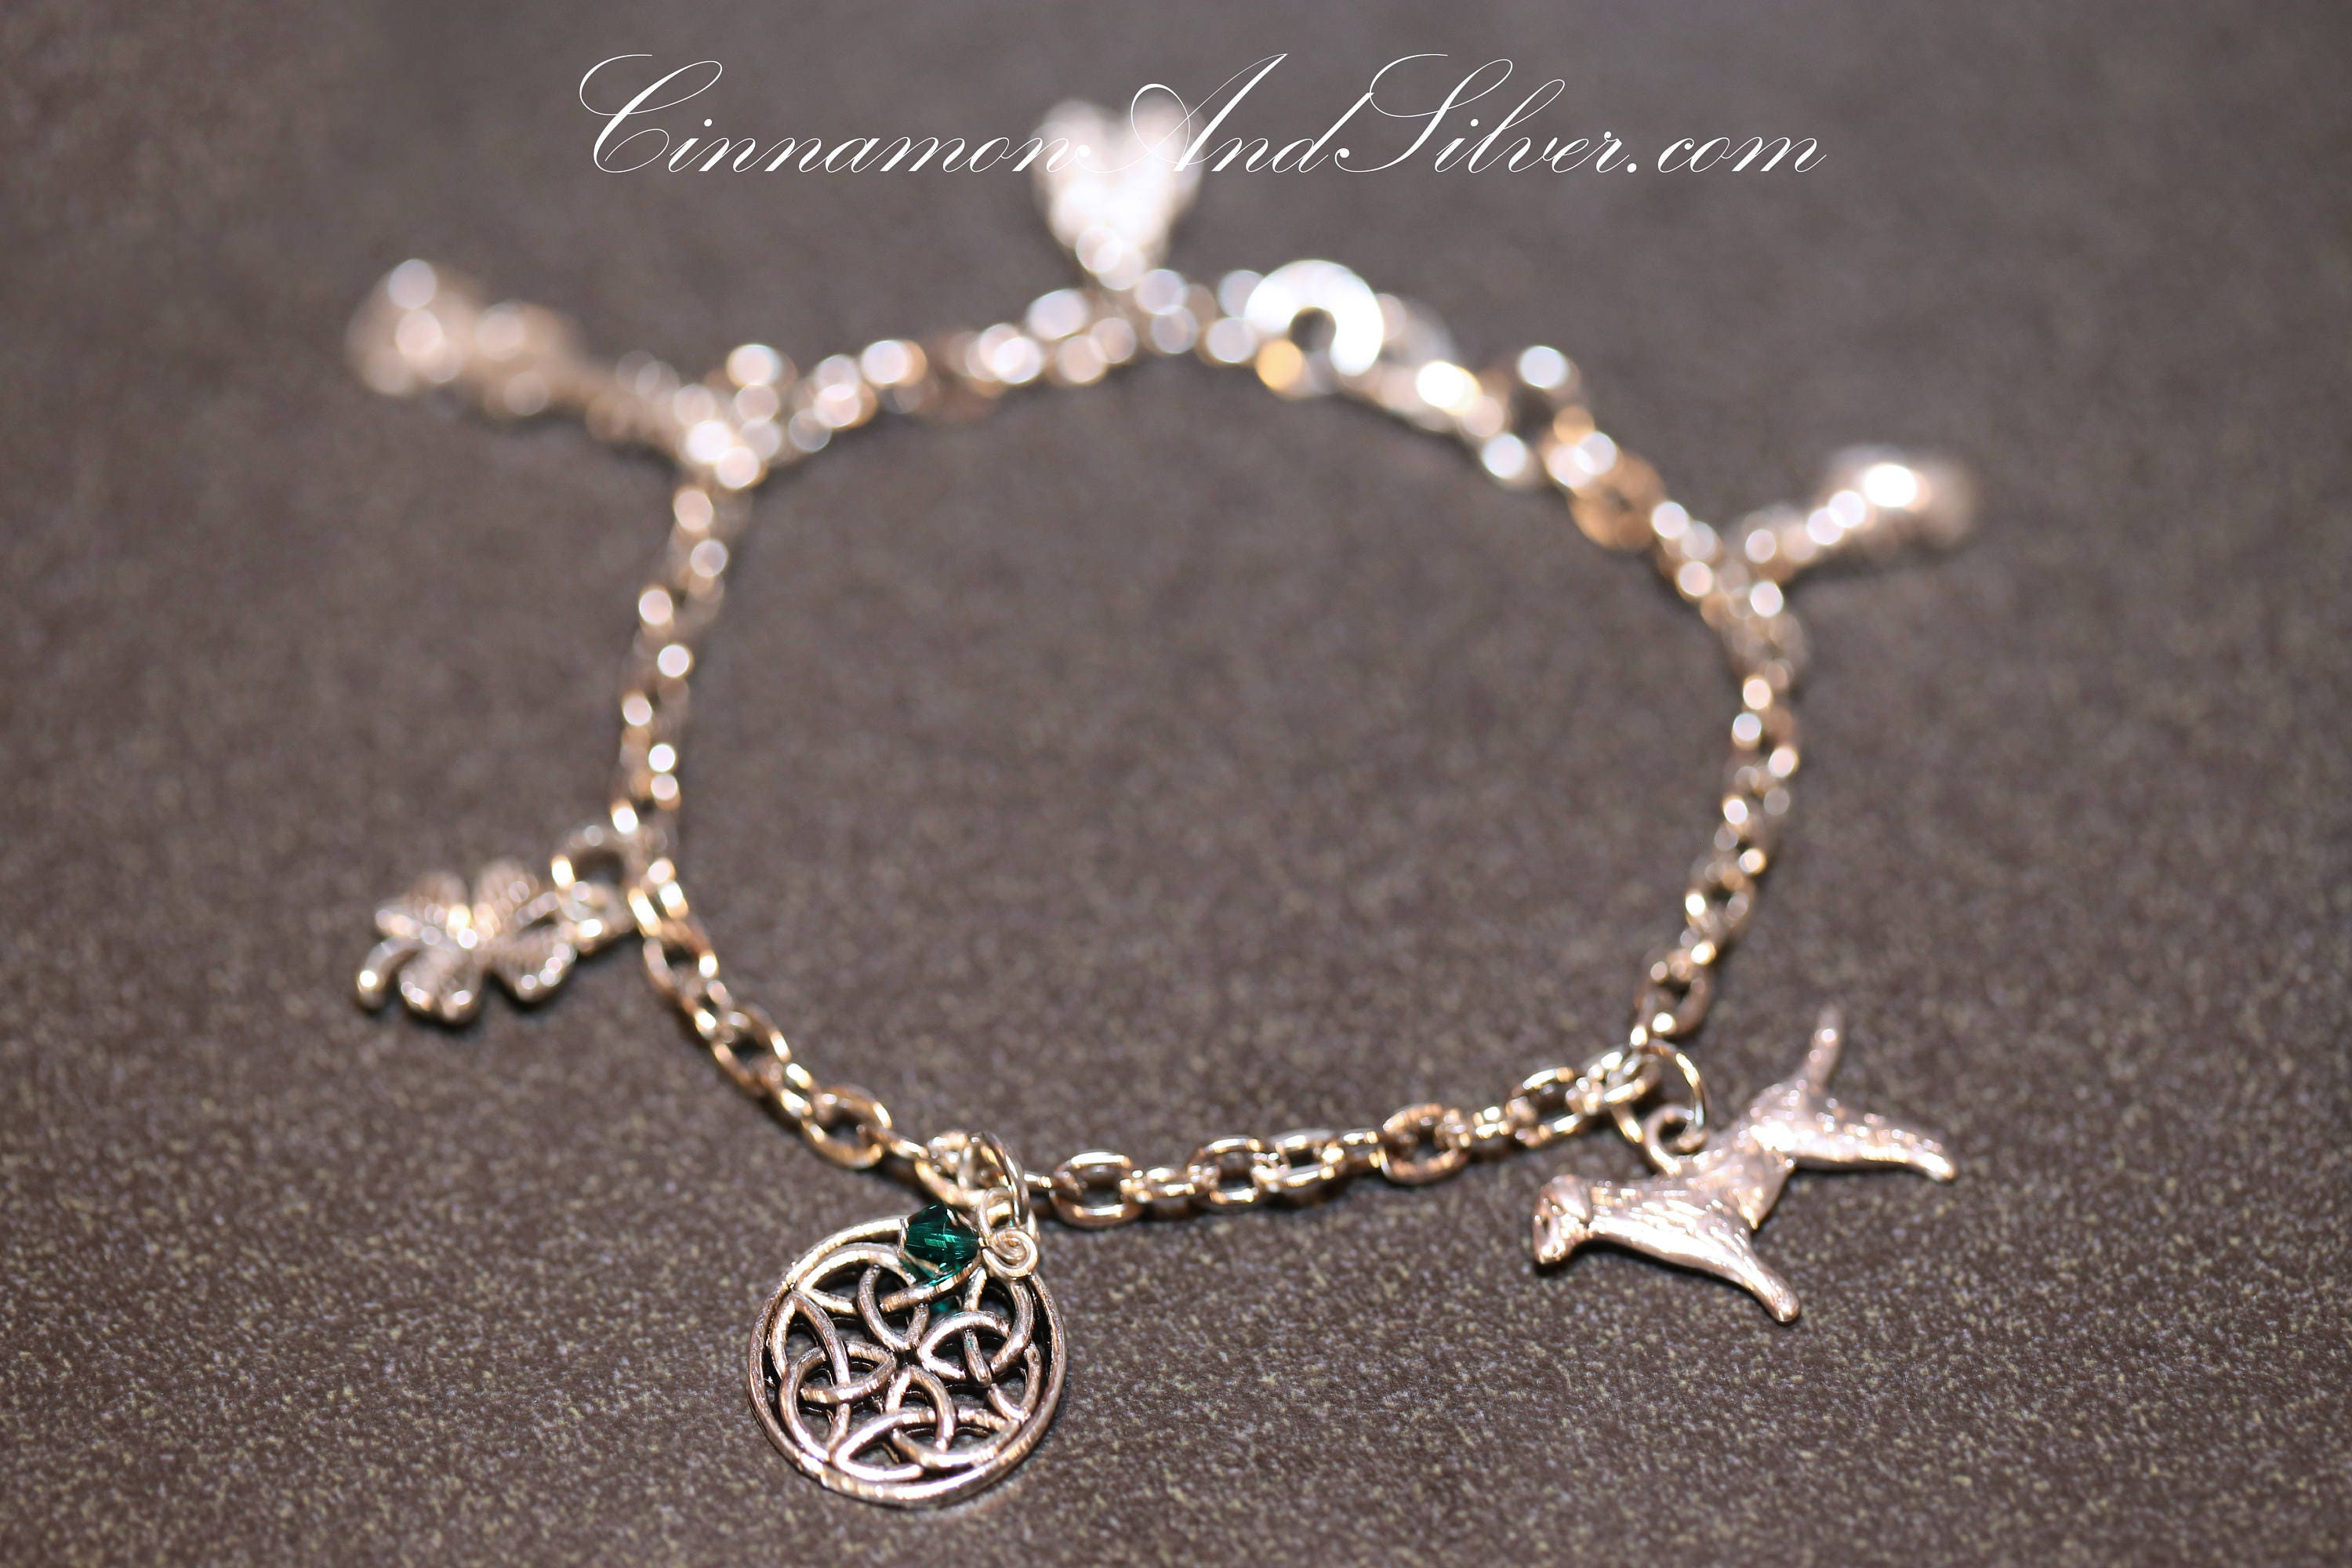 life tree pendant irish satellite jewelry heavens inspired deirdre jewellery vault of the donnelly